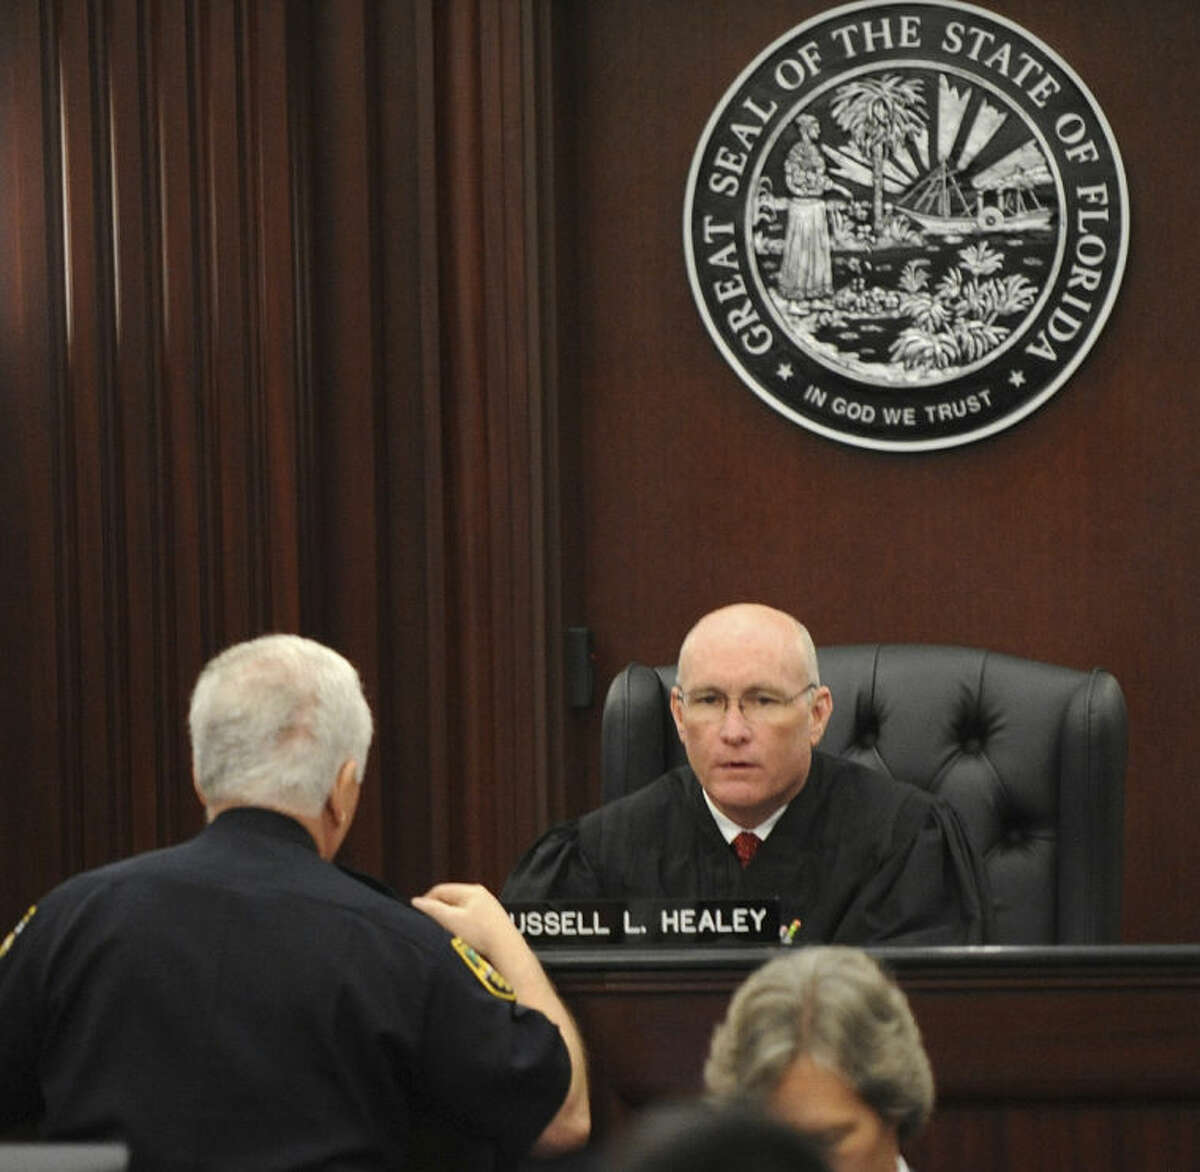 Judge Russell Healey talks with Supervisor of Courthouse Baliffs, Major Steven Weintraub, about the jury asking to have the large evidence boxes moved out of the jury room into an evidence locker to give them more room as the jury deliberates after the trial of Michael Dunn, Saturday, Feb. 15, 2014 in Jacksonville, Fla. Dunn is charged with fatally shooting 17-year-old Jordan Davis after an argument over loud music outside a Jacksonville convenient store in 2012. (AP Photo/The Florida Times-Union, Bob Mack, Pool)